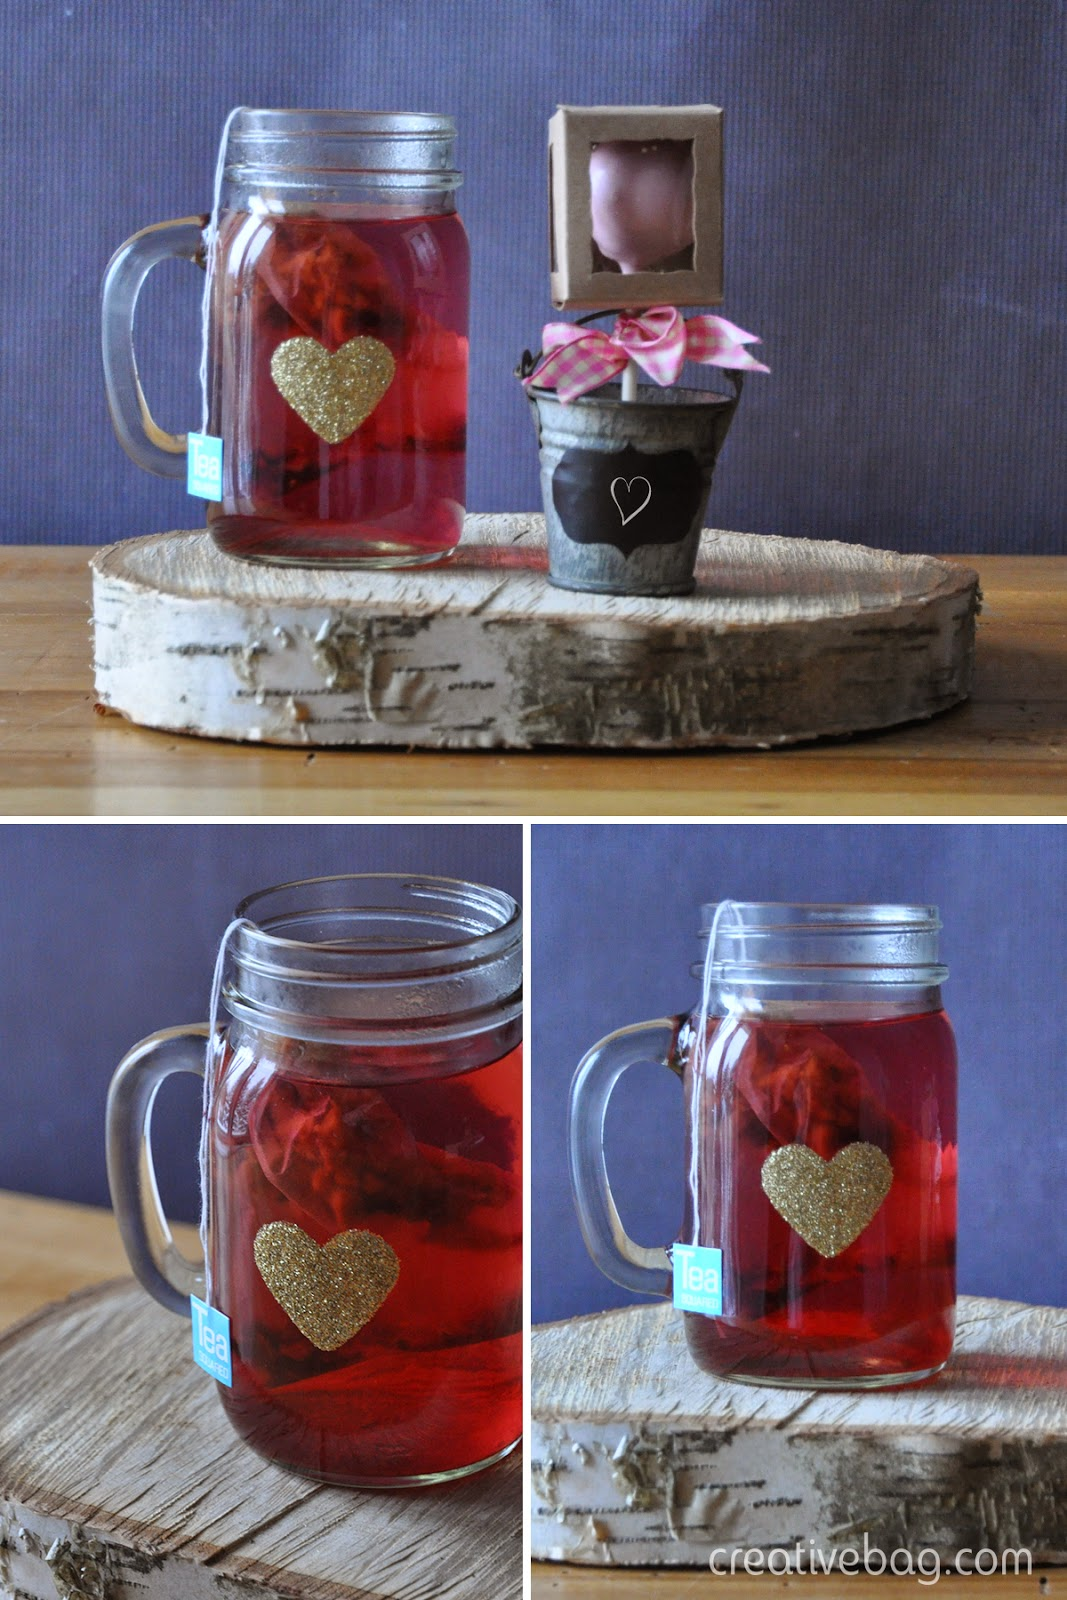 diy for valentine's day - add glitter hearts to mason jar mugs ... dishwasher safe after 28 days | Creative Bag